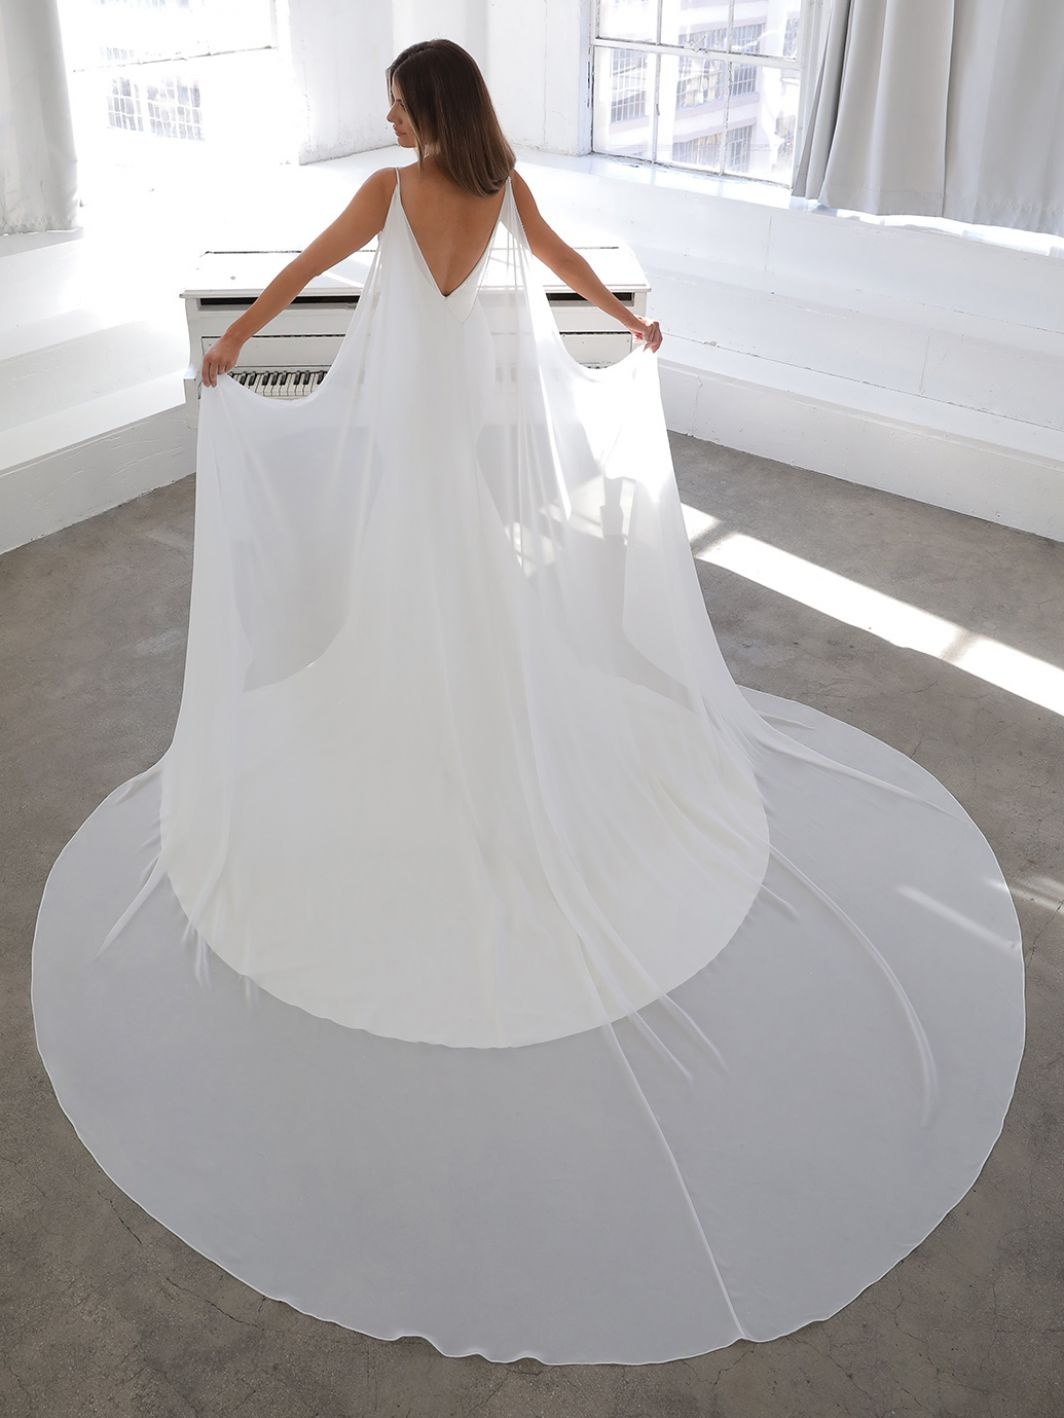 Nelia with cape from Enzoani available at emily bridalwear in Sheffield